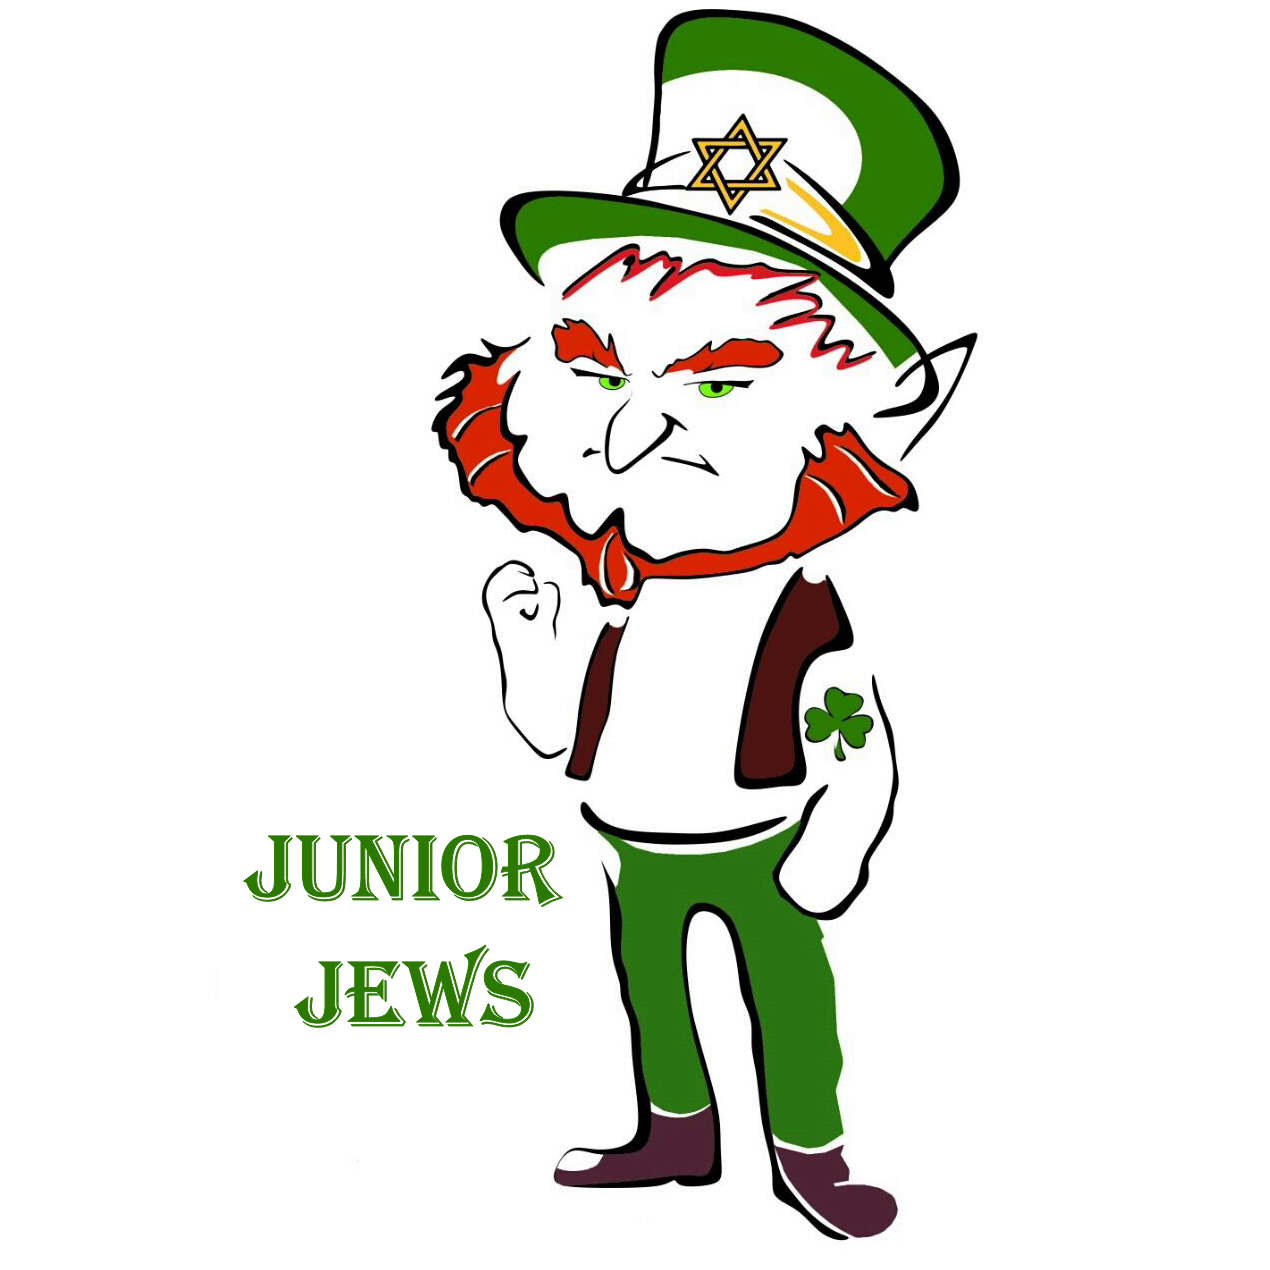 Junior Jews